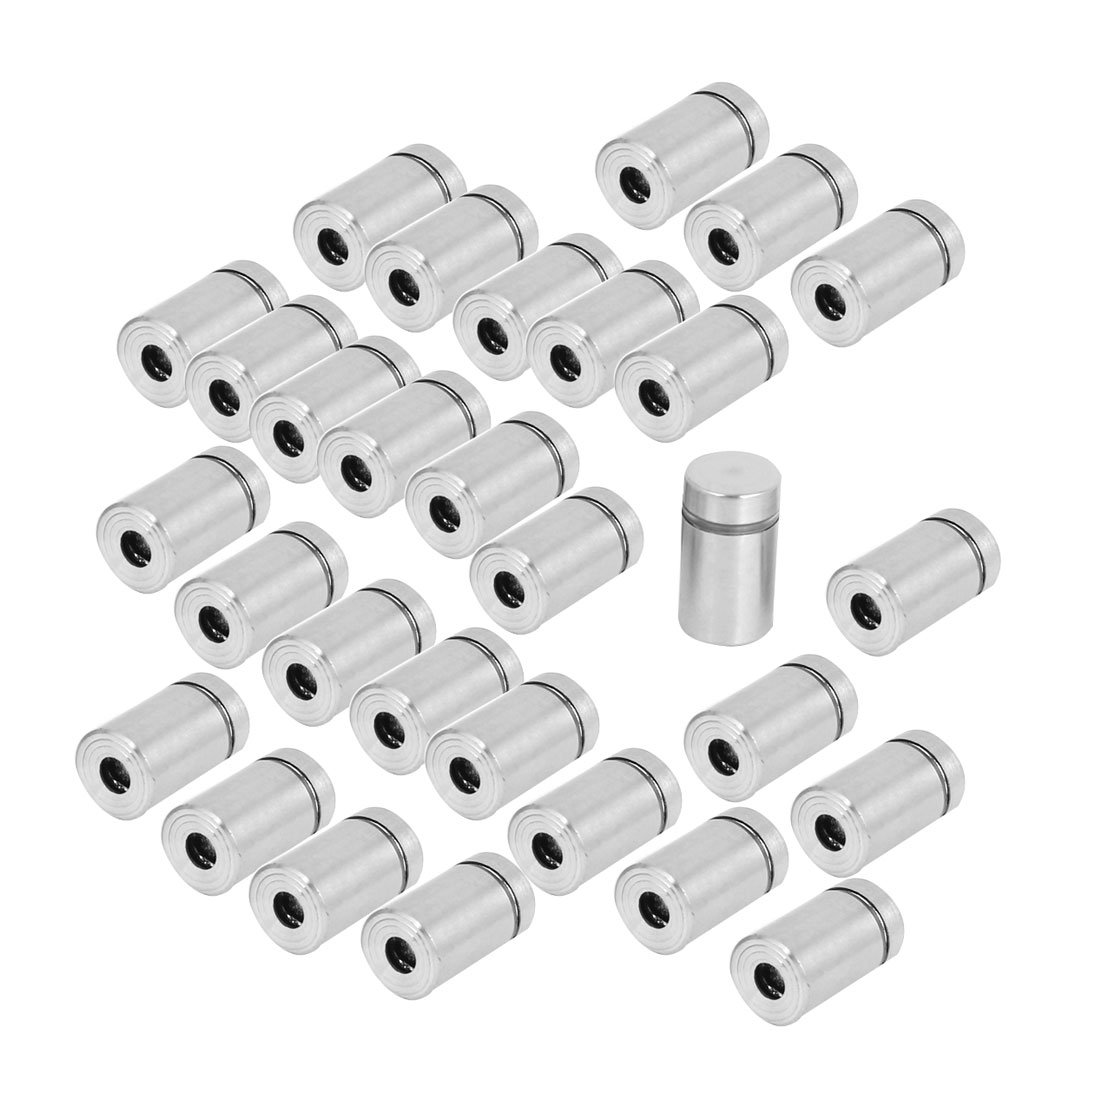 Uxcell a15041500ux0273 Stainless Steel Advertising Nail Wall Support Glass Standoff Fixing Screw (Pack of 30)